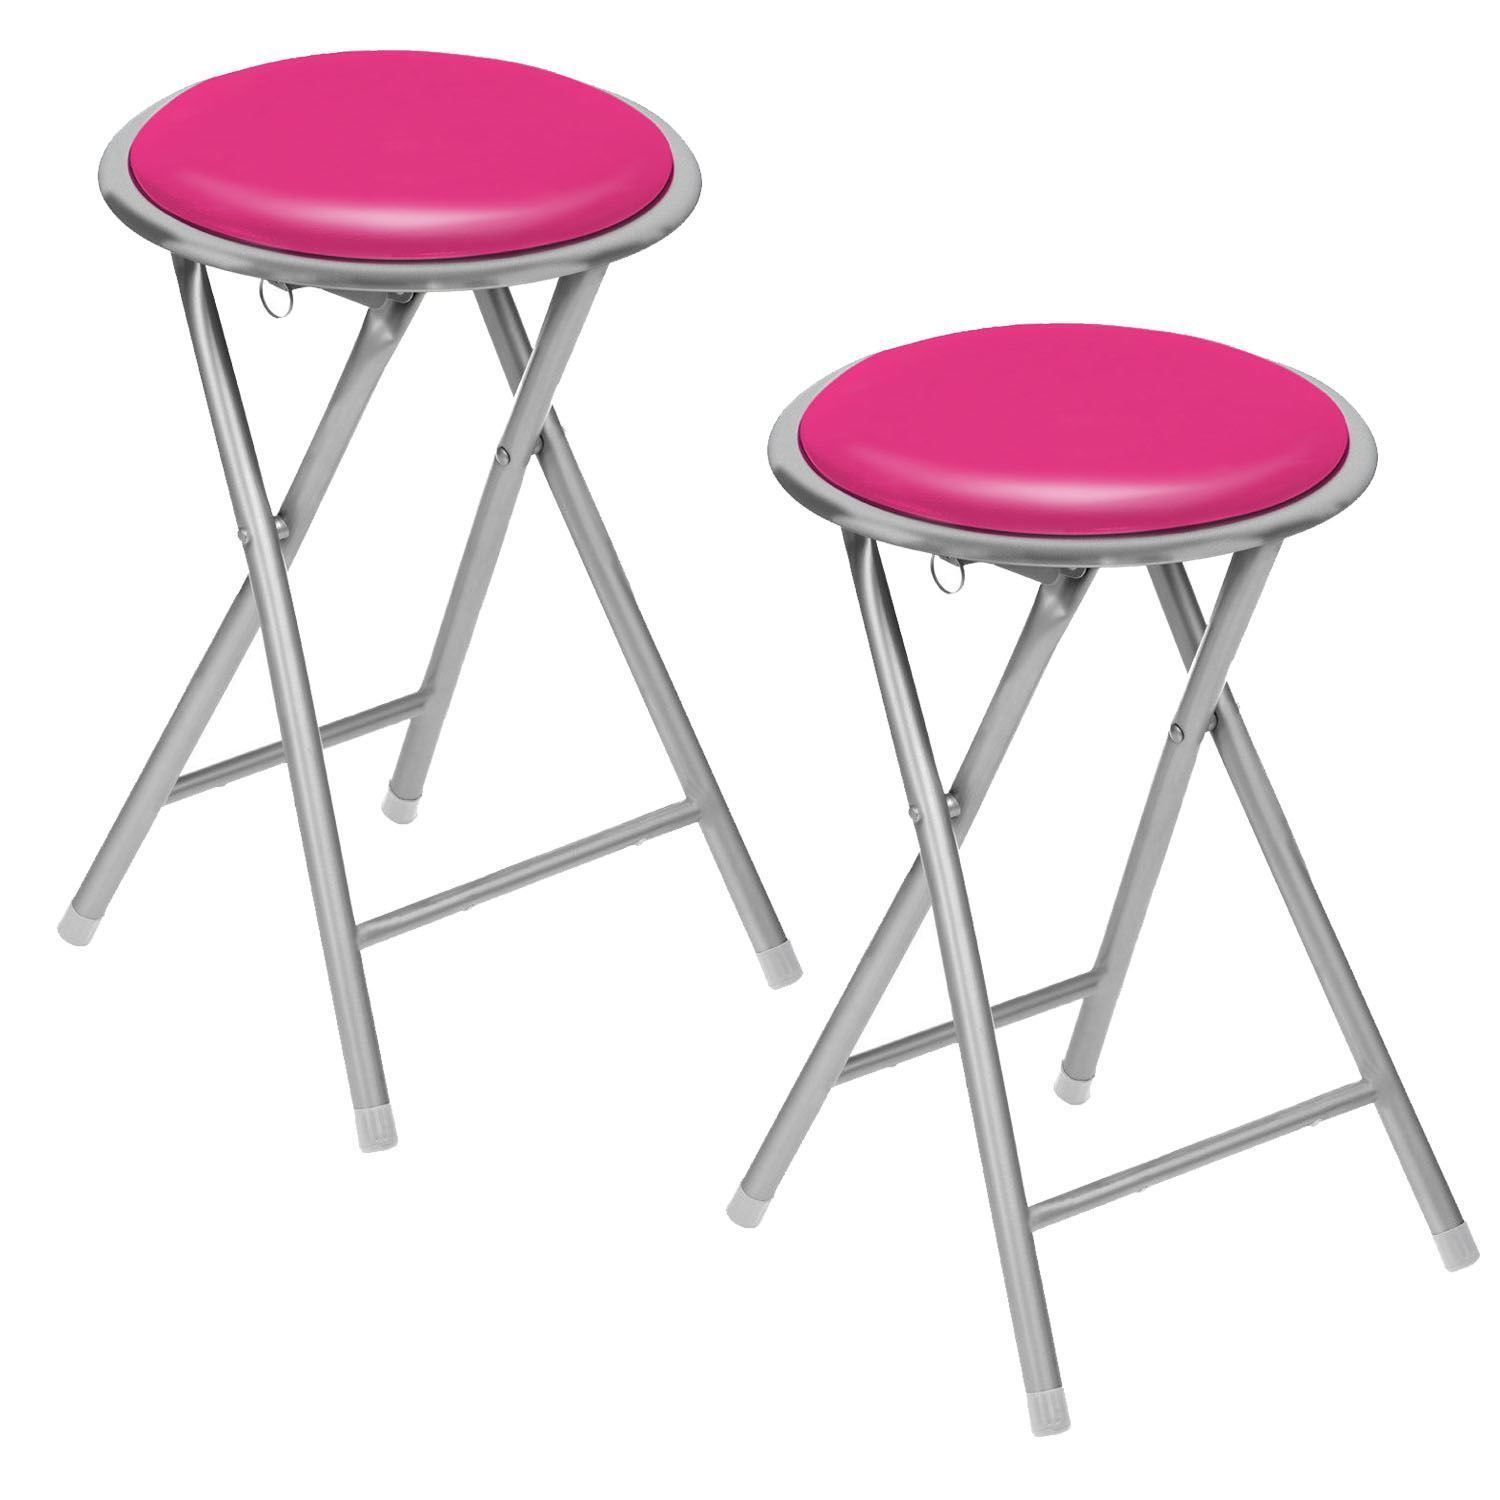 pink stool chair personalized childrens table and chairs set of 2 soft padded round folding seat